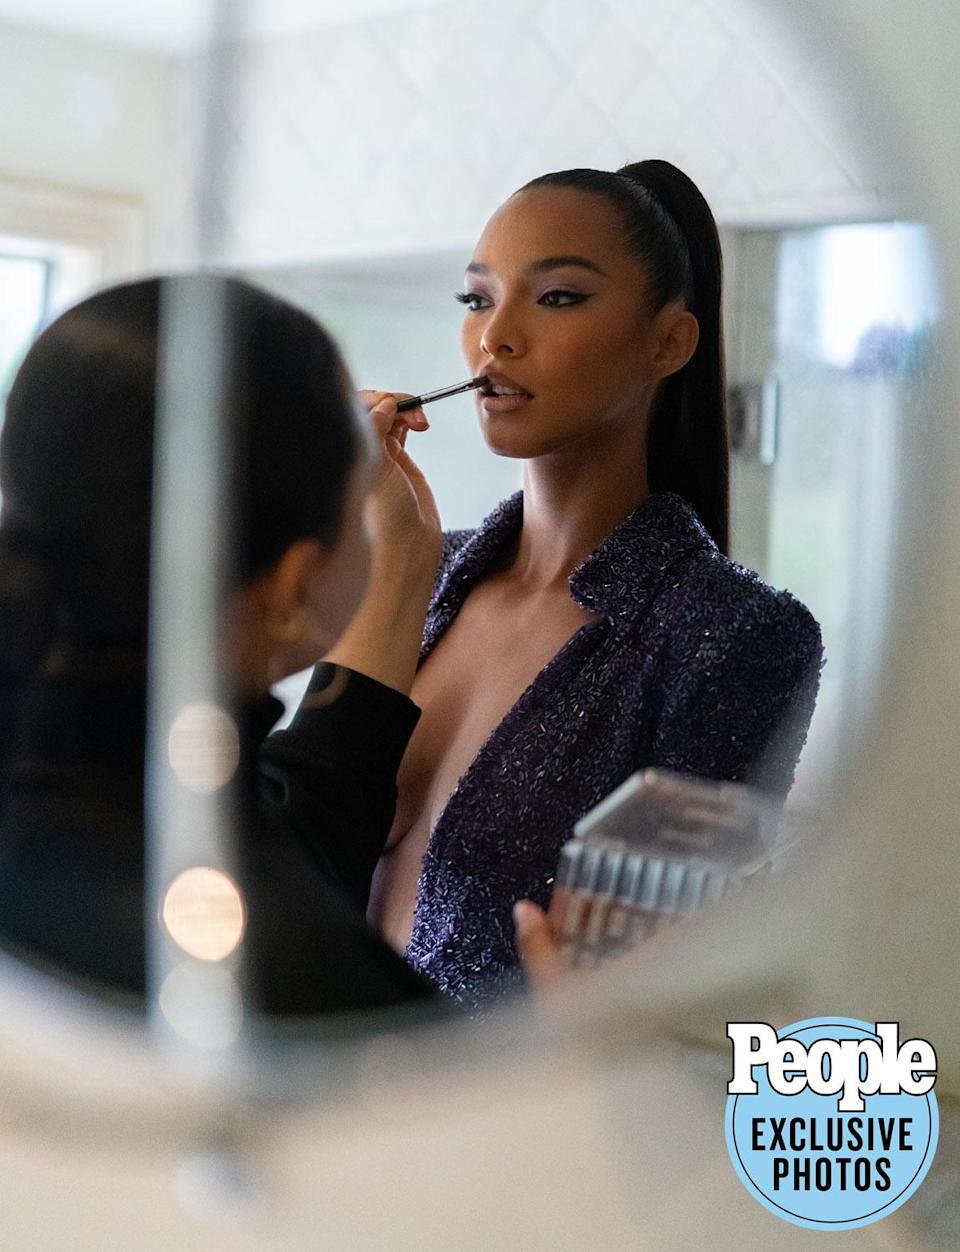 <p>Final touches before you see my full look.</p>